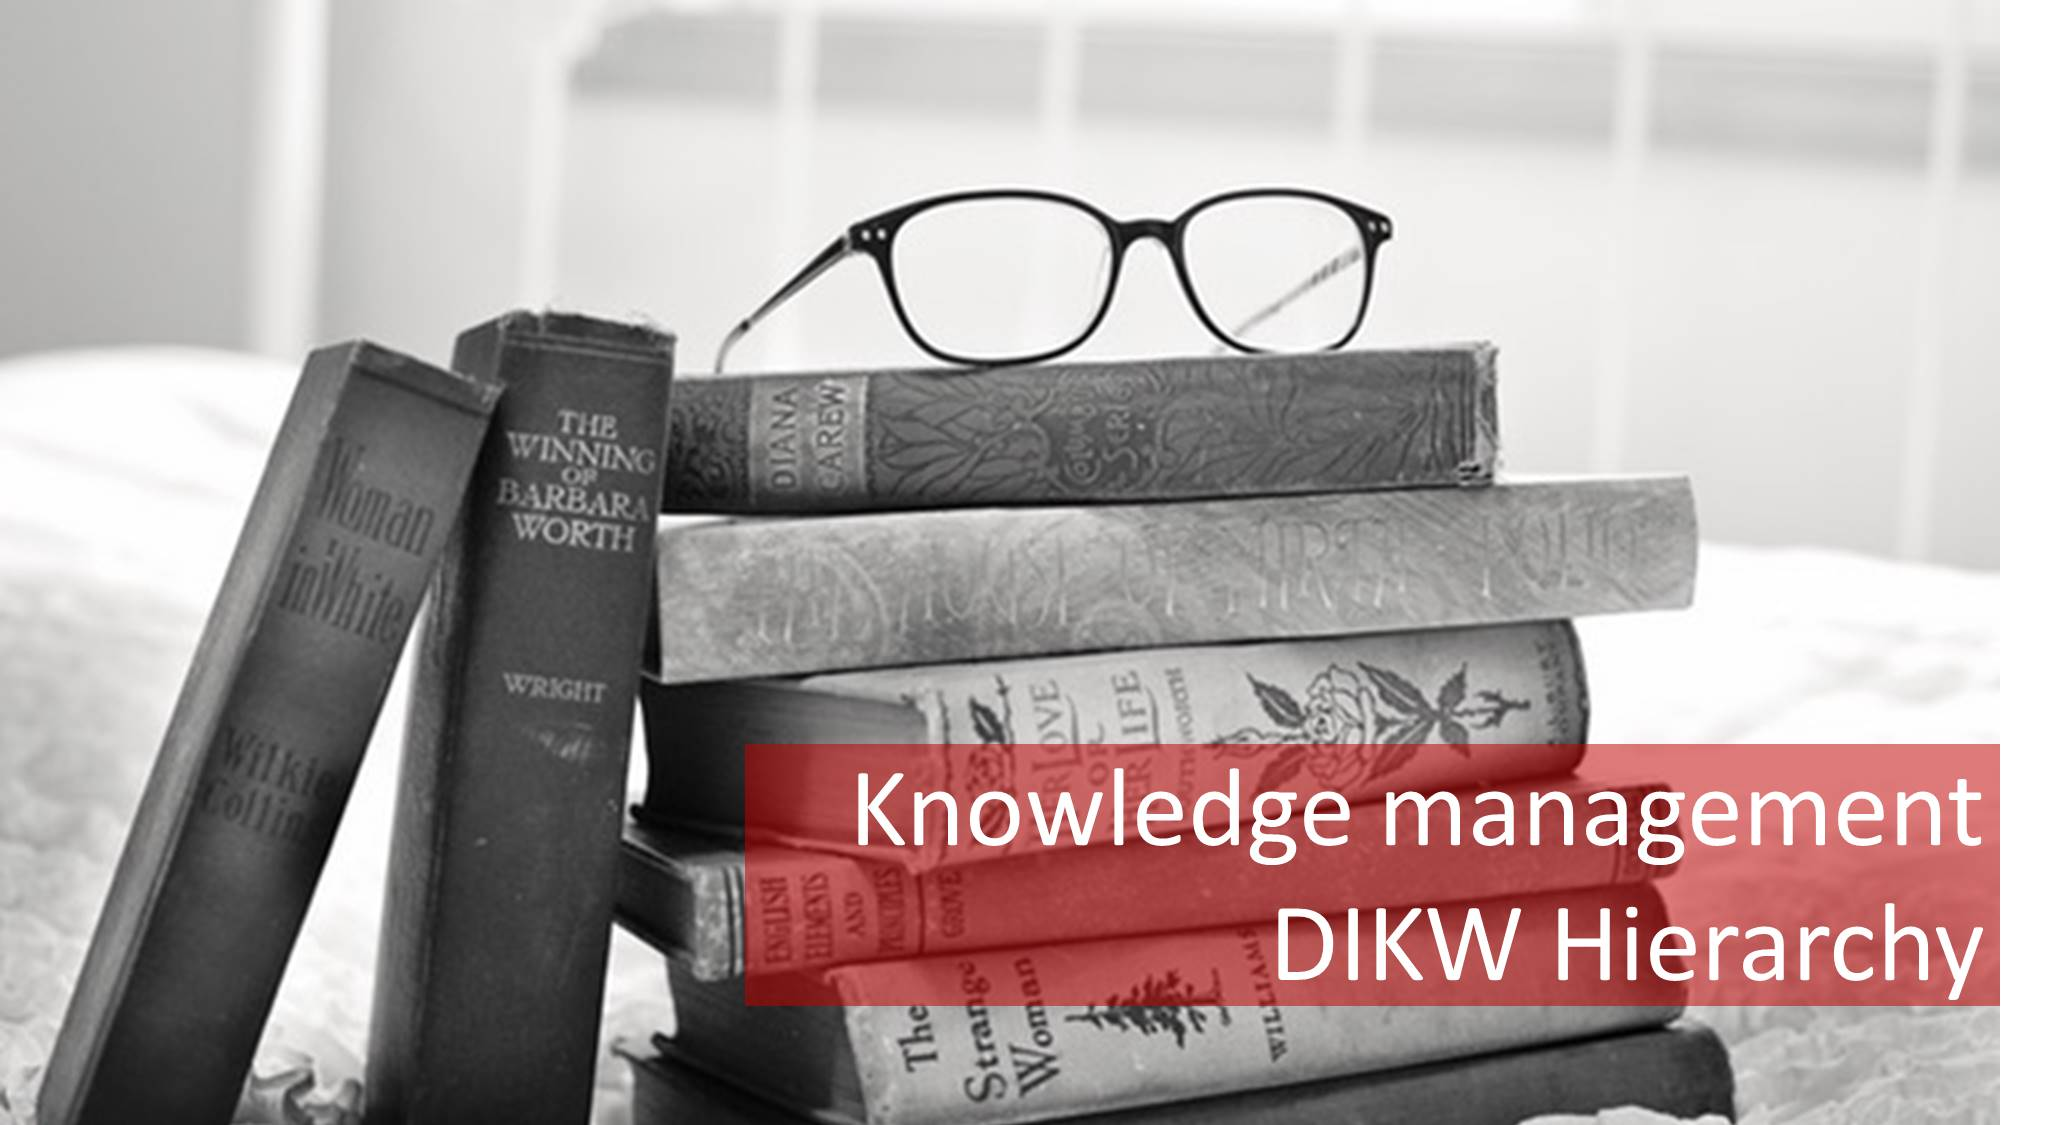 4 Steps Of Dikw Hierarchy Essential Tools For Knowledge Management